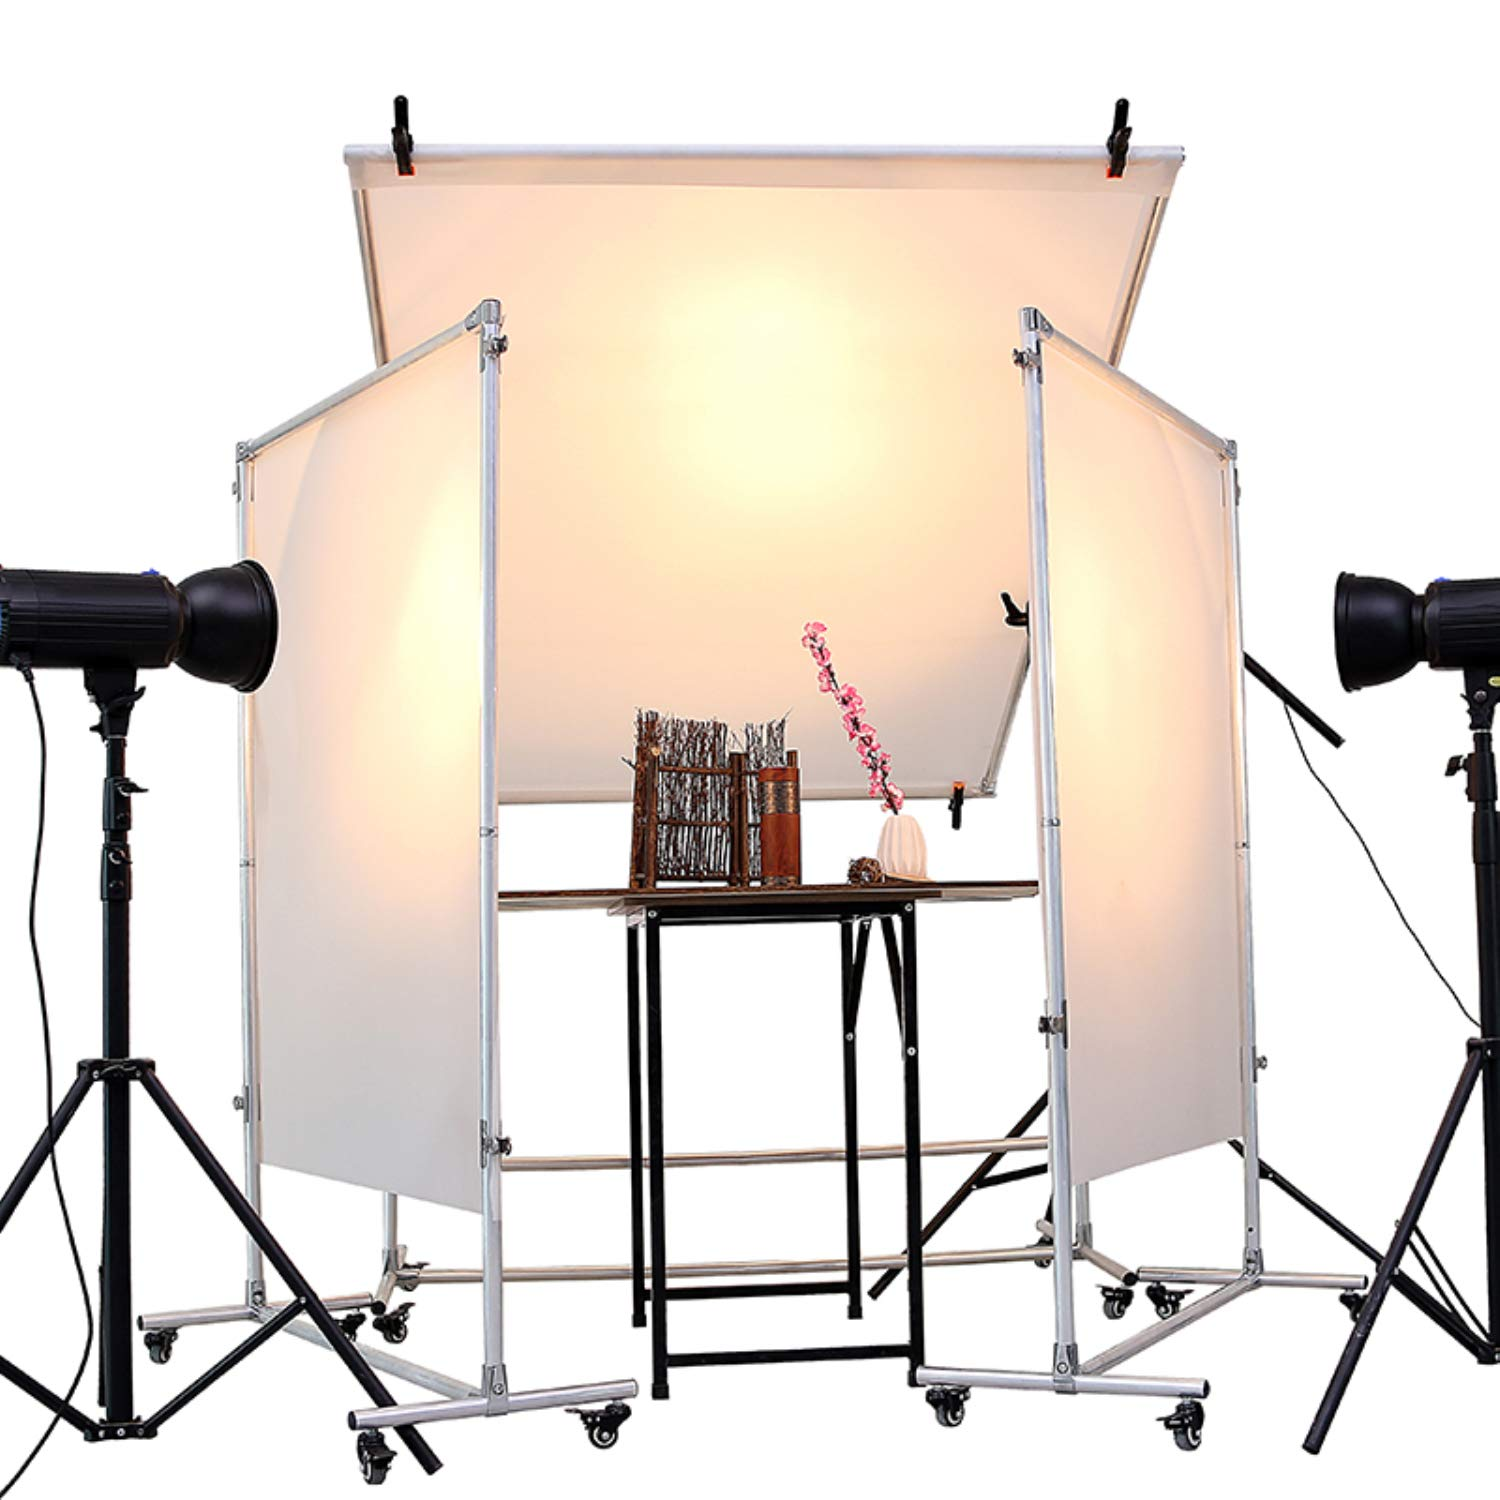 Snow Diamond Photo Studio Free-Standing and Removable Lighting Diffuser and Reflector Flat Panel with Universal Wheel,for Professional Portrait Photography and Product Advertising Photography by SNOW DIAMOND